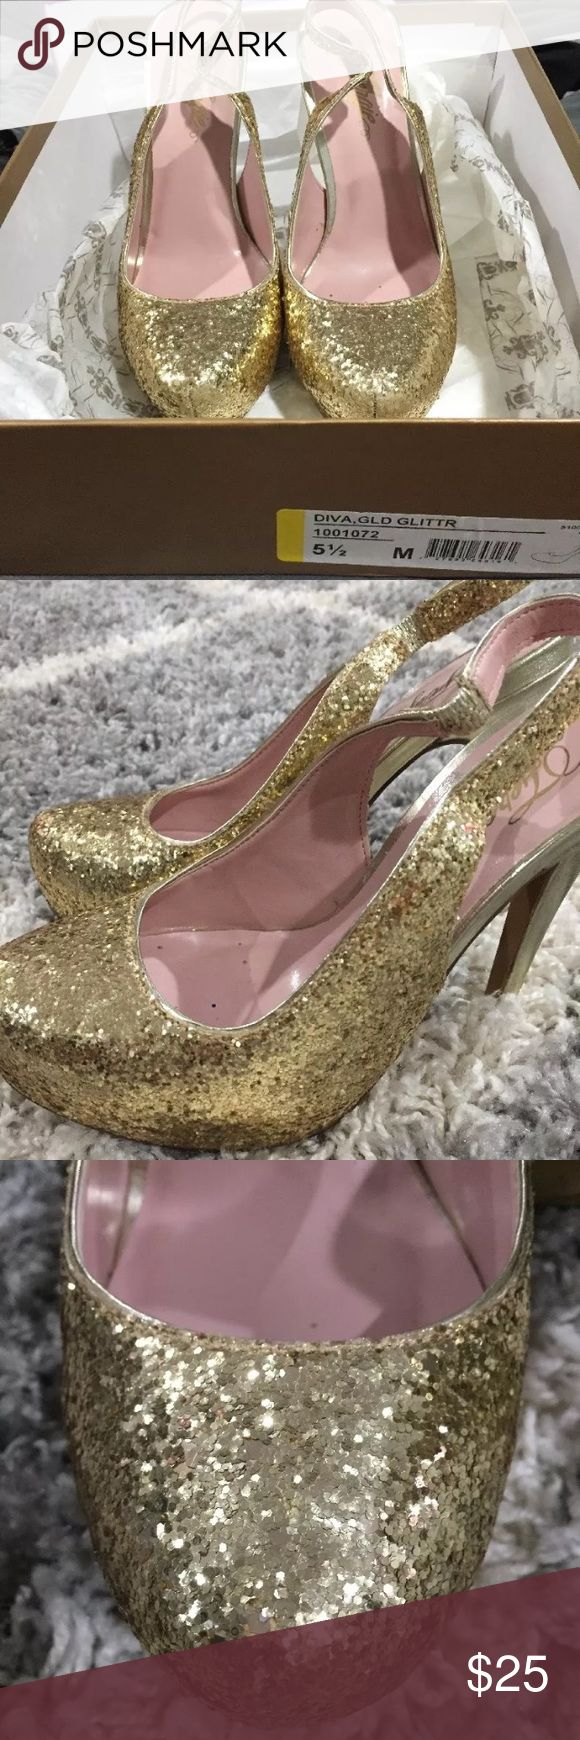 Fergie Diva Glitter Pumps Brand New other then trying on around the house ! Fergie Shoes Heels